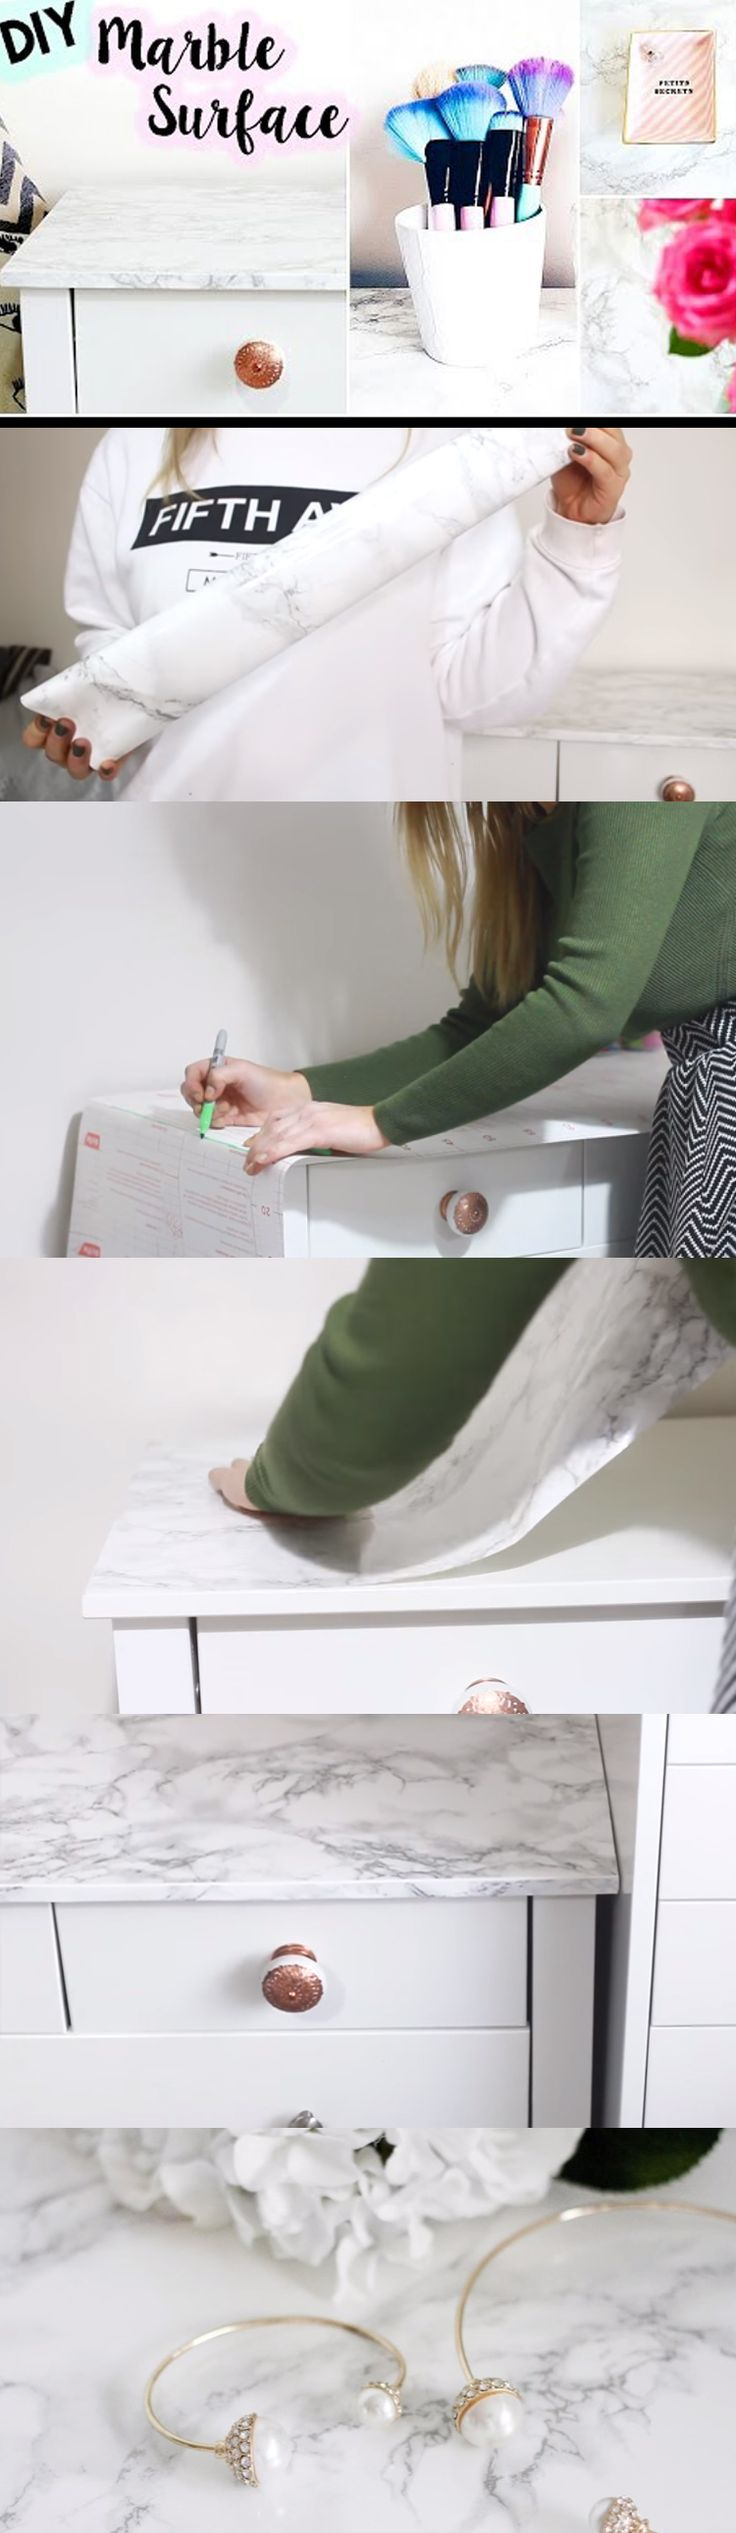 The only thing you'll need is a marble contact paper and you can do this on pretty much any flat surface. See video and written instructions here==> | How To DIY Marble Surface | http://gwyl.io/diy-marble-surface/